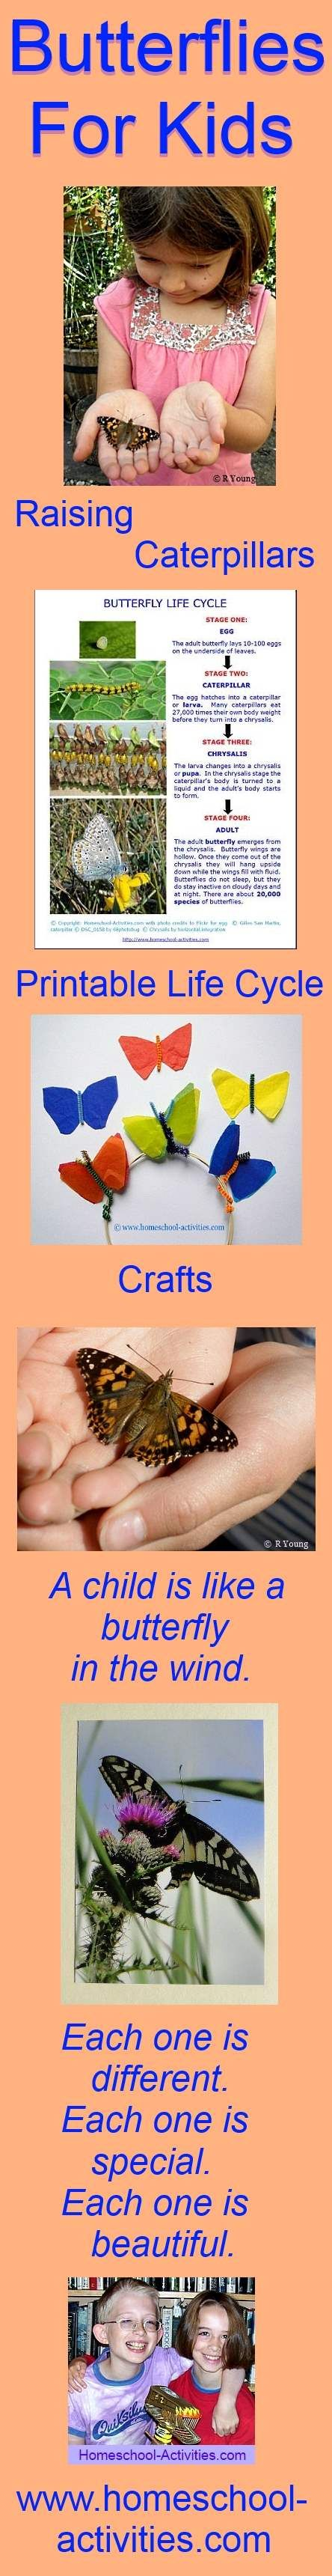 25 Best Ideas about Butterfly Facts For Kids on Pinterest